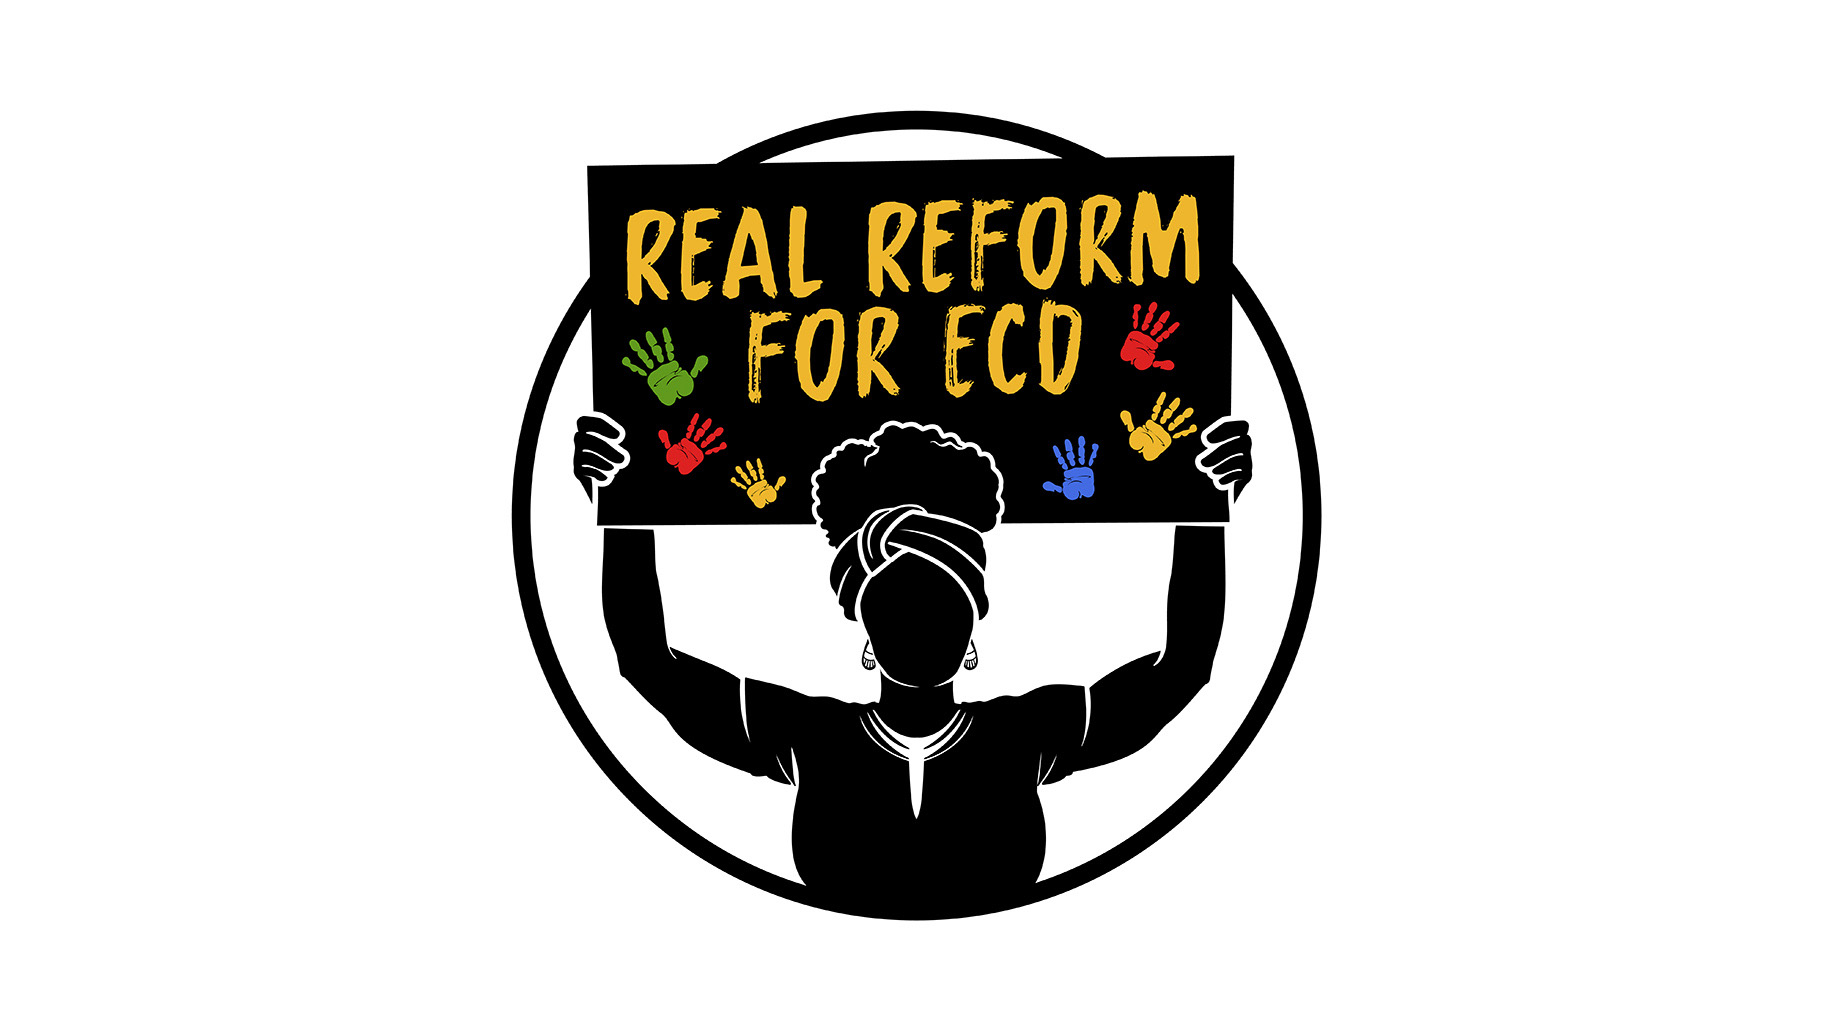 REAL REFORM CAMPAIGN: The silence at local government level on early childhood development must be broken